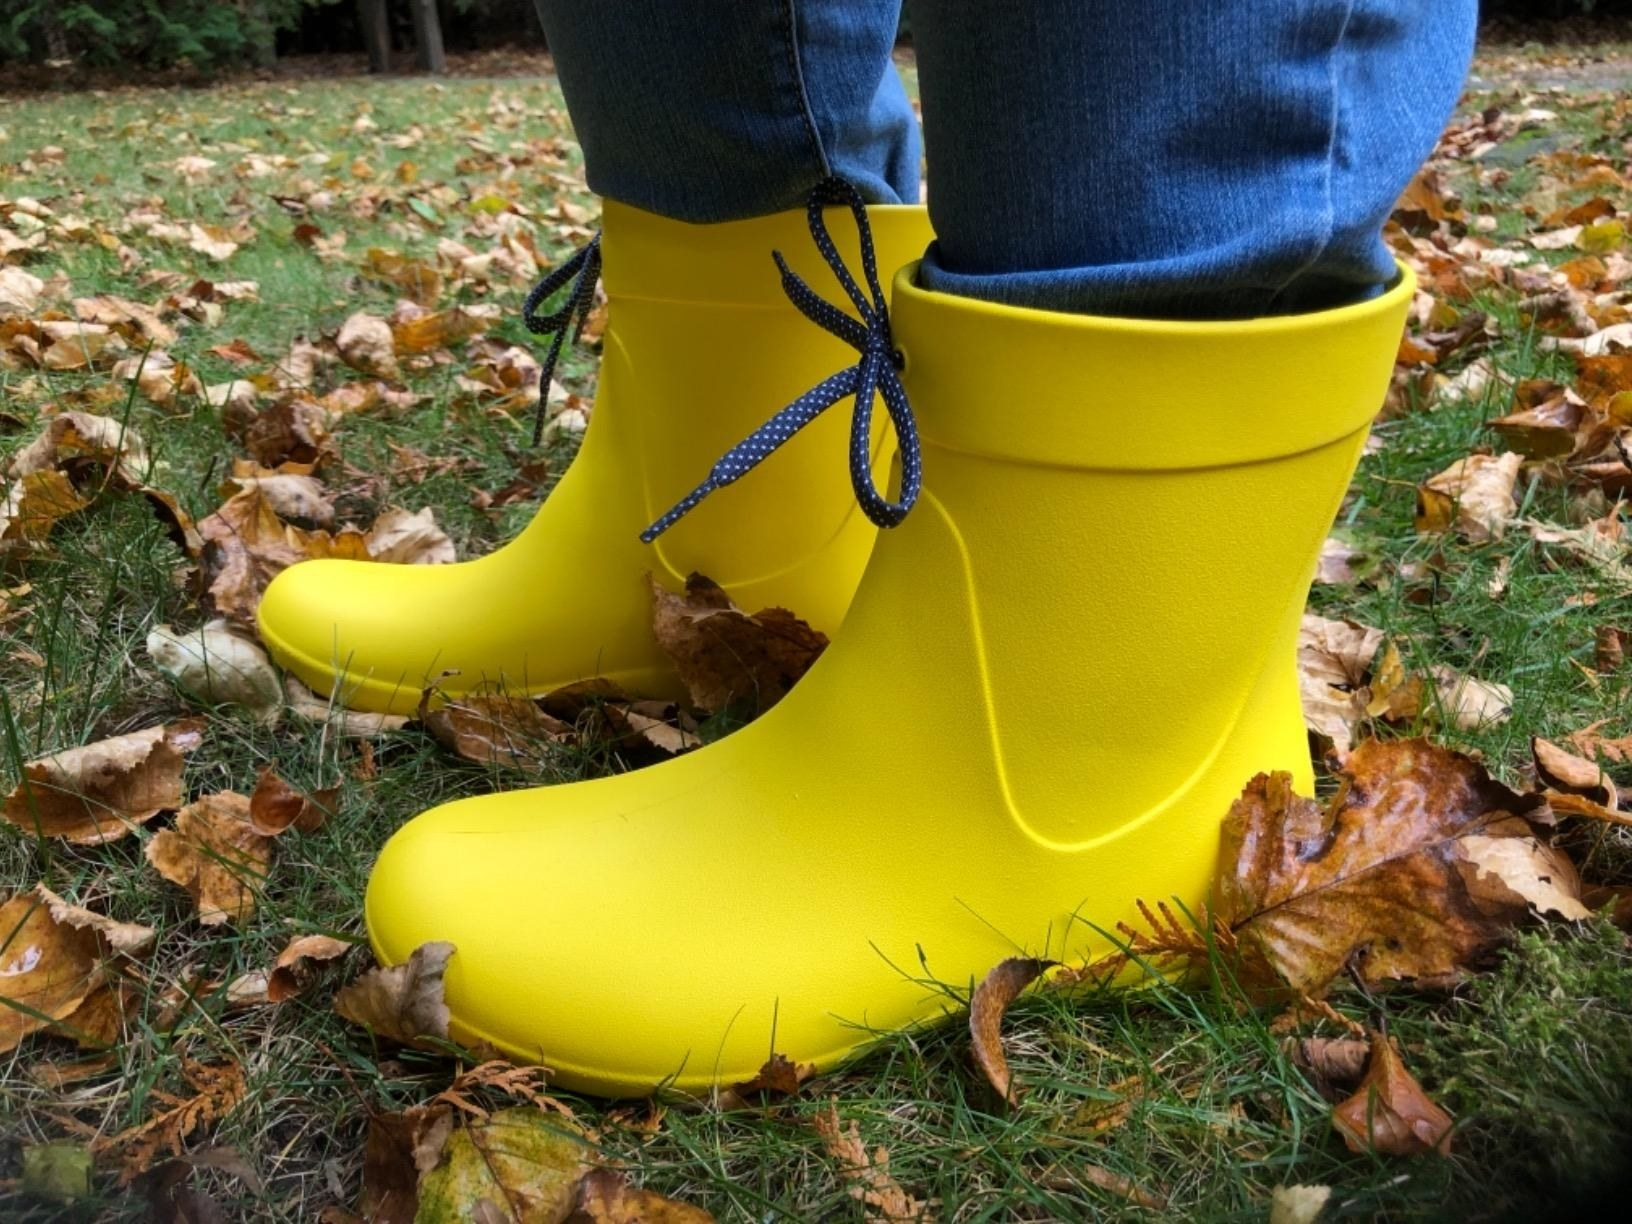 reviewer wearing bright yellow above-the-ankle single-piece boots